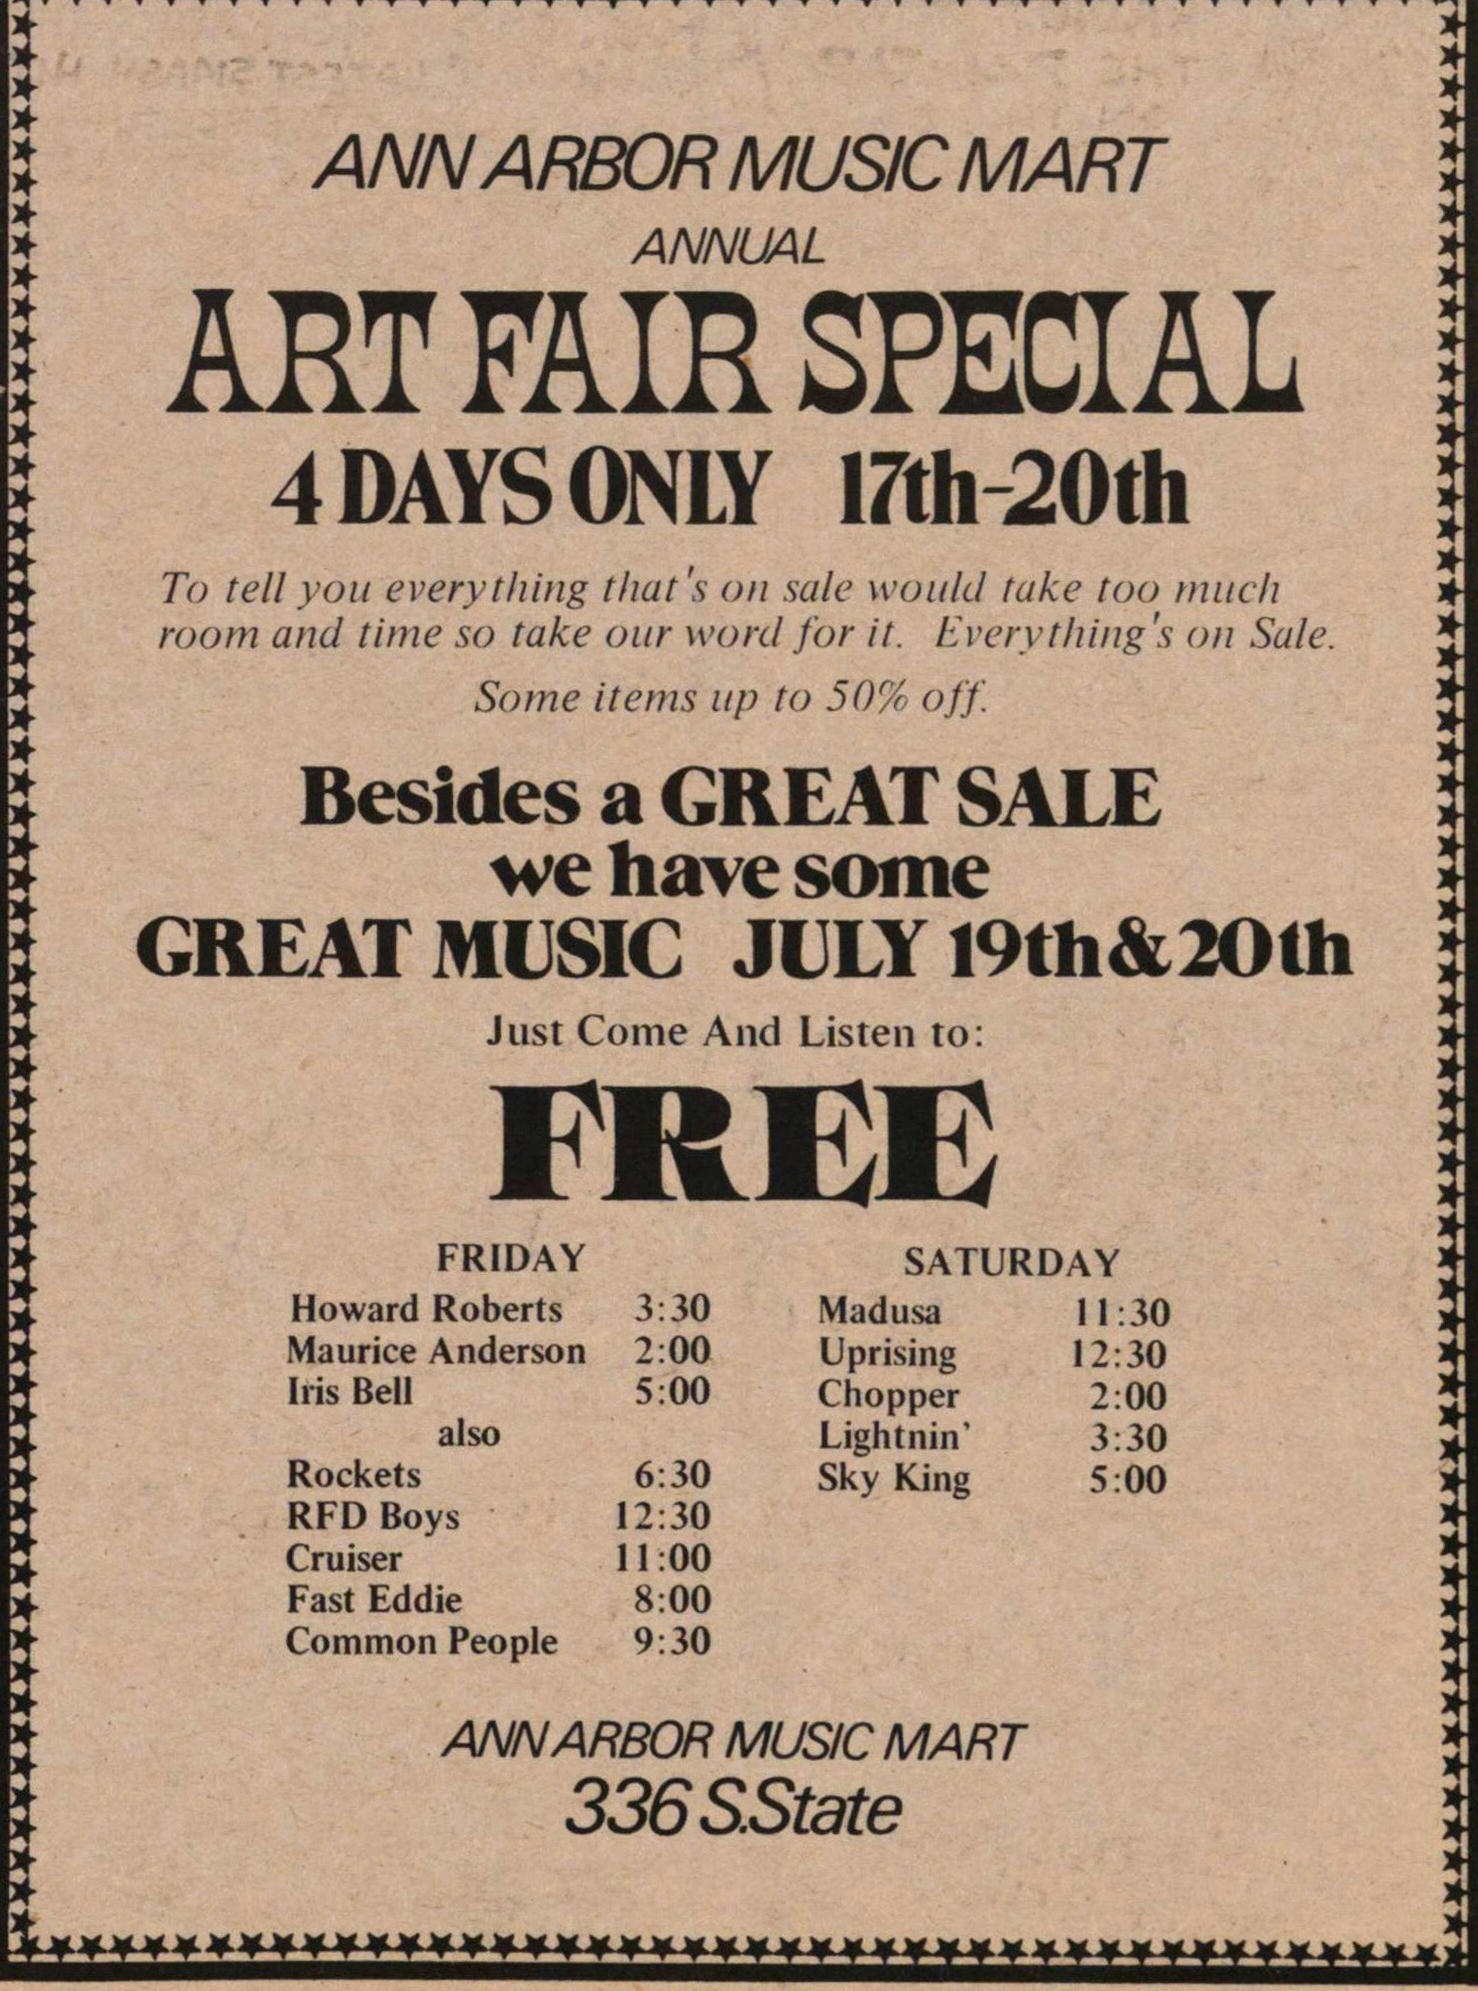 Art Fair Special image